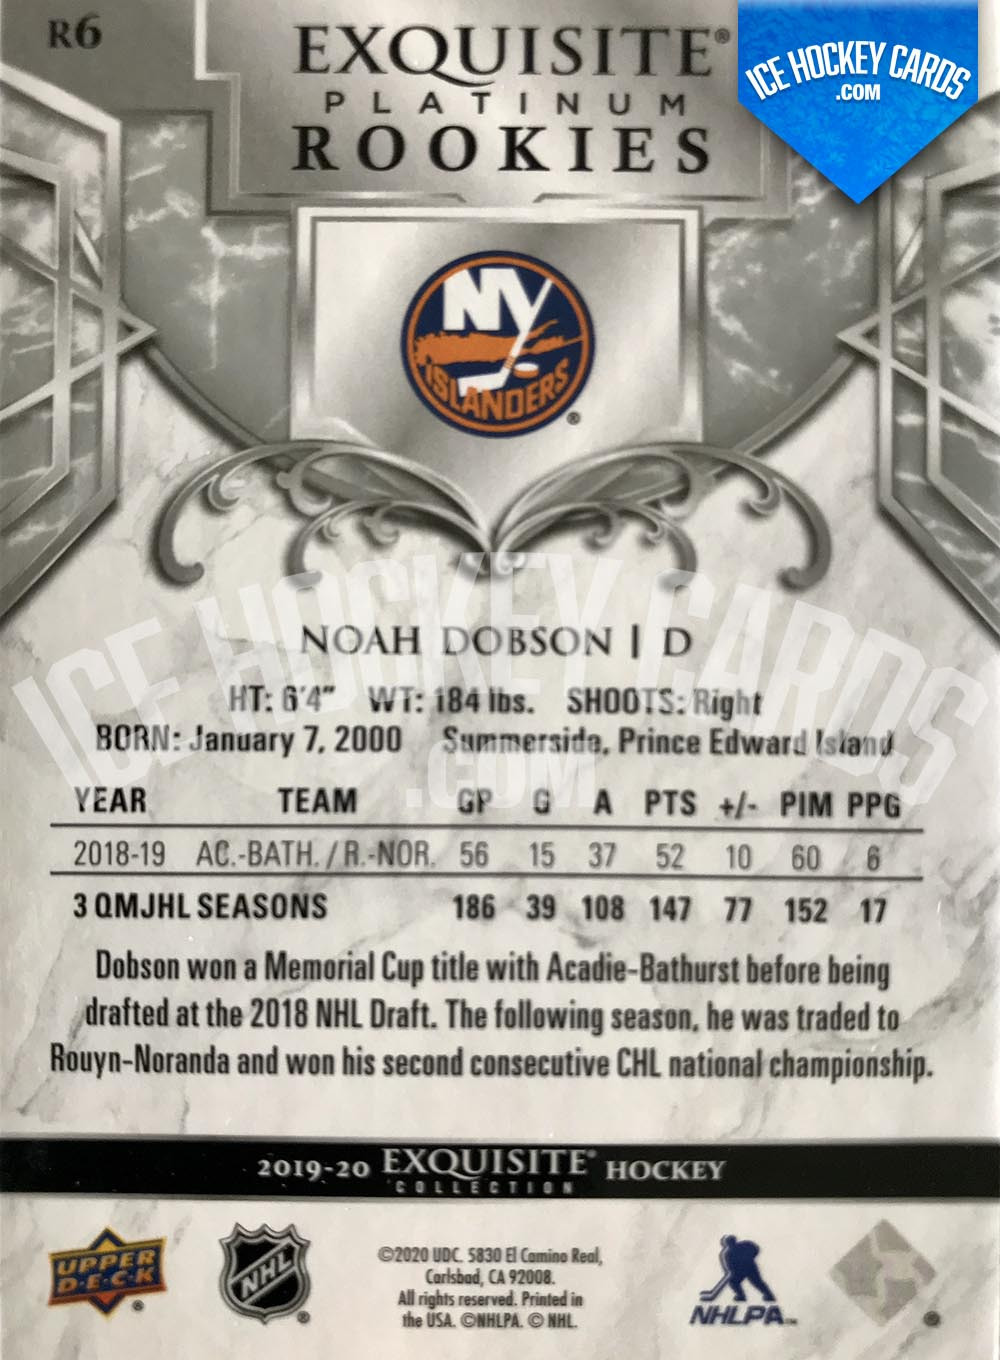 Upper Deck - Exquisite Collection 2019-20 - Noah Dobson Exquisite Platinum Rookies Card back